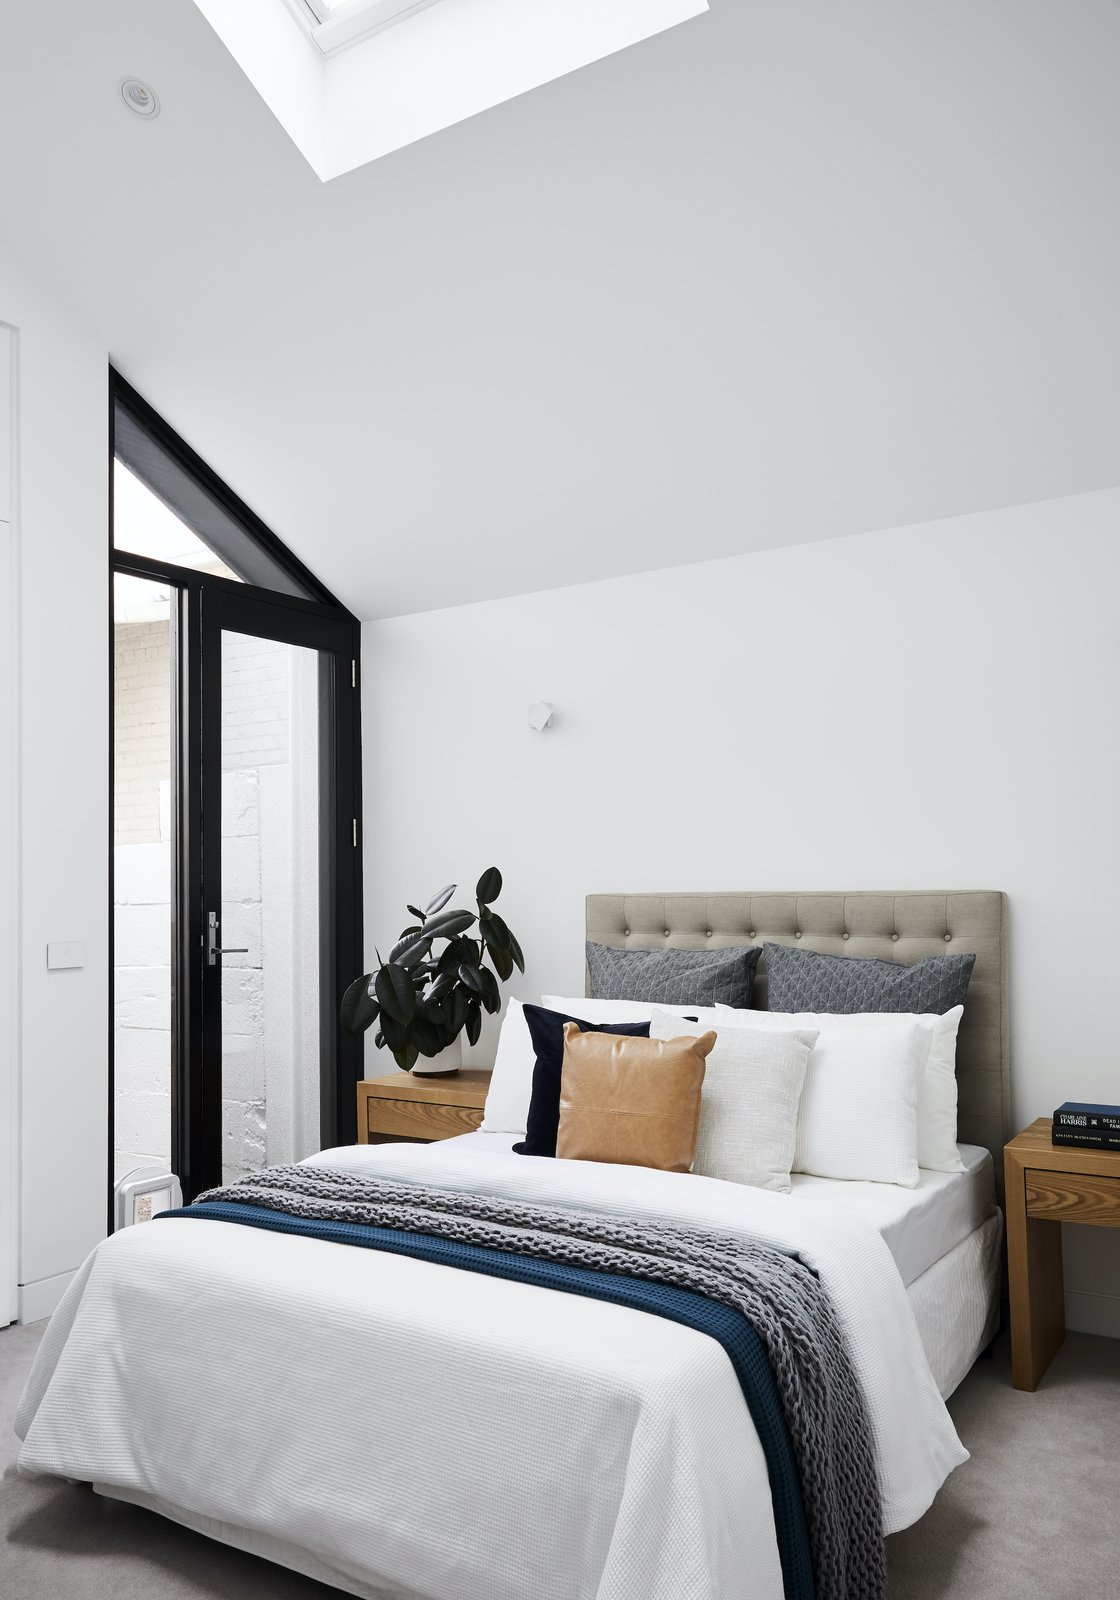 Bedroom at Dot's House by Atlas Architects.